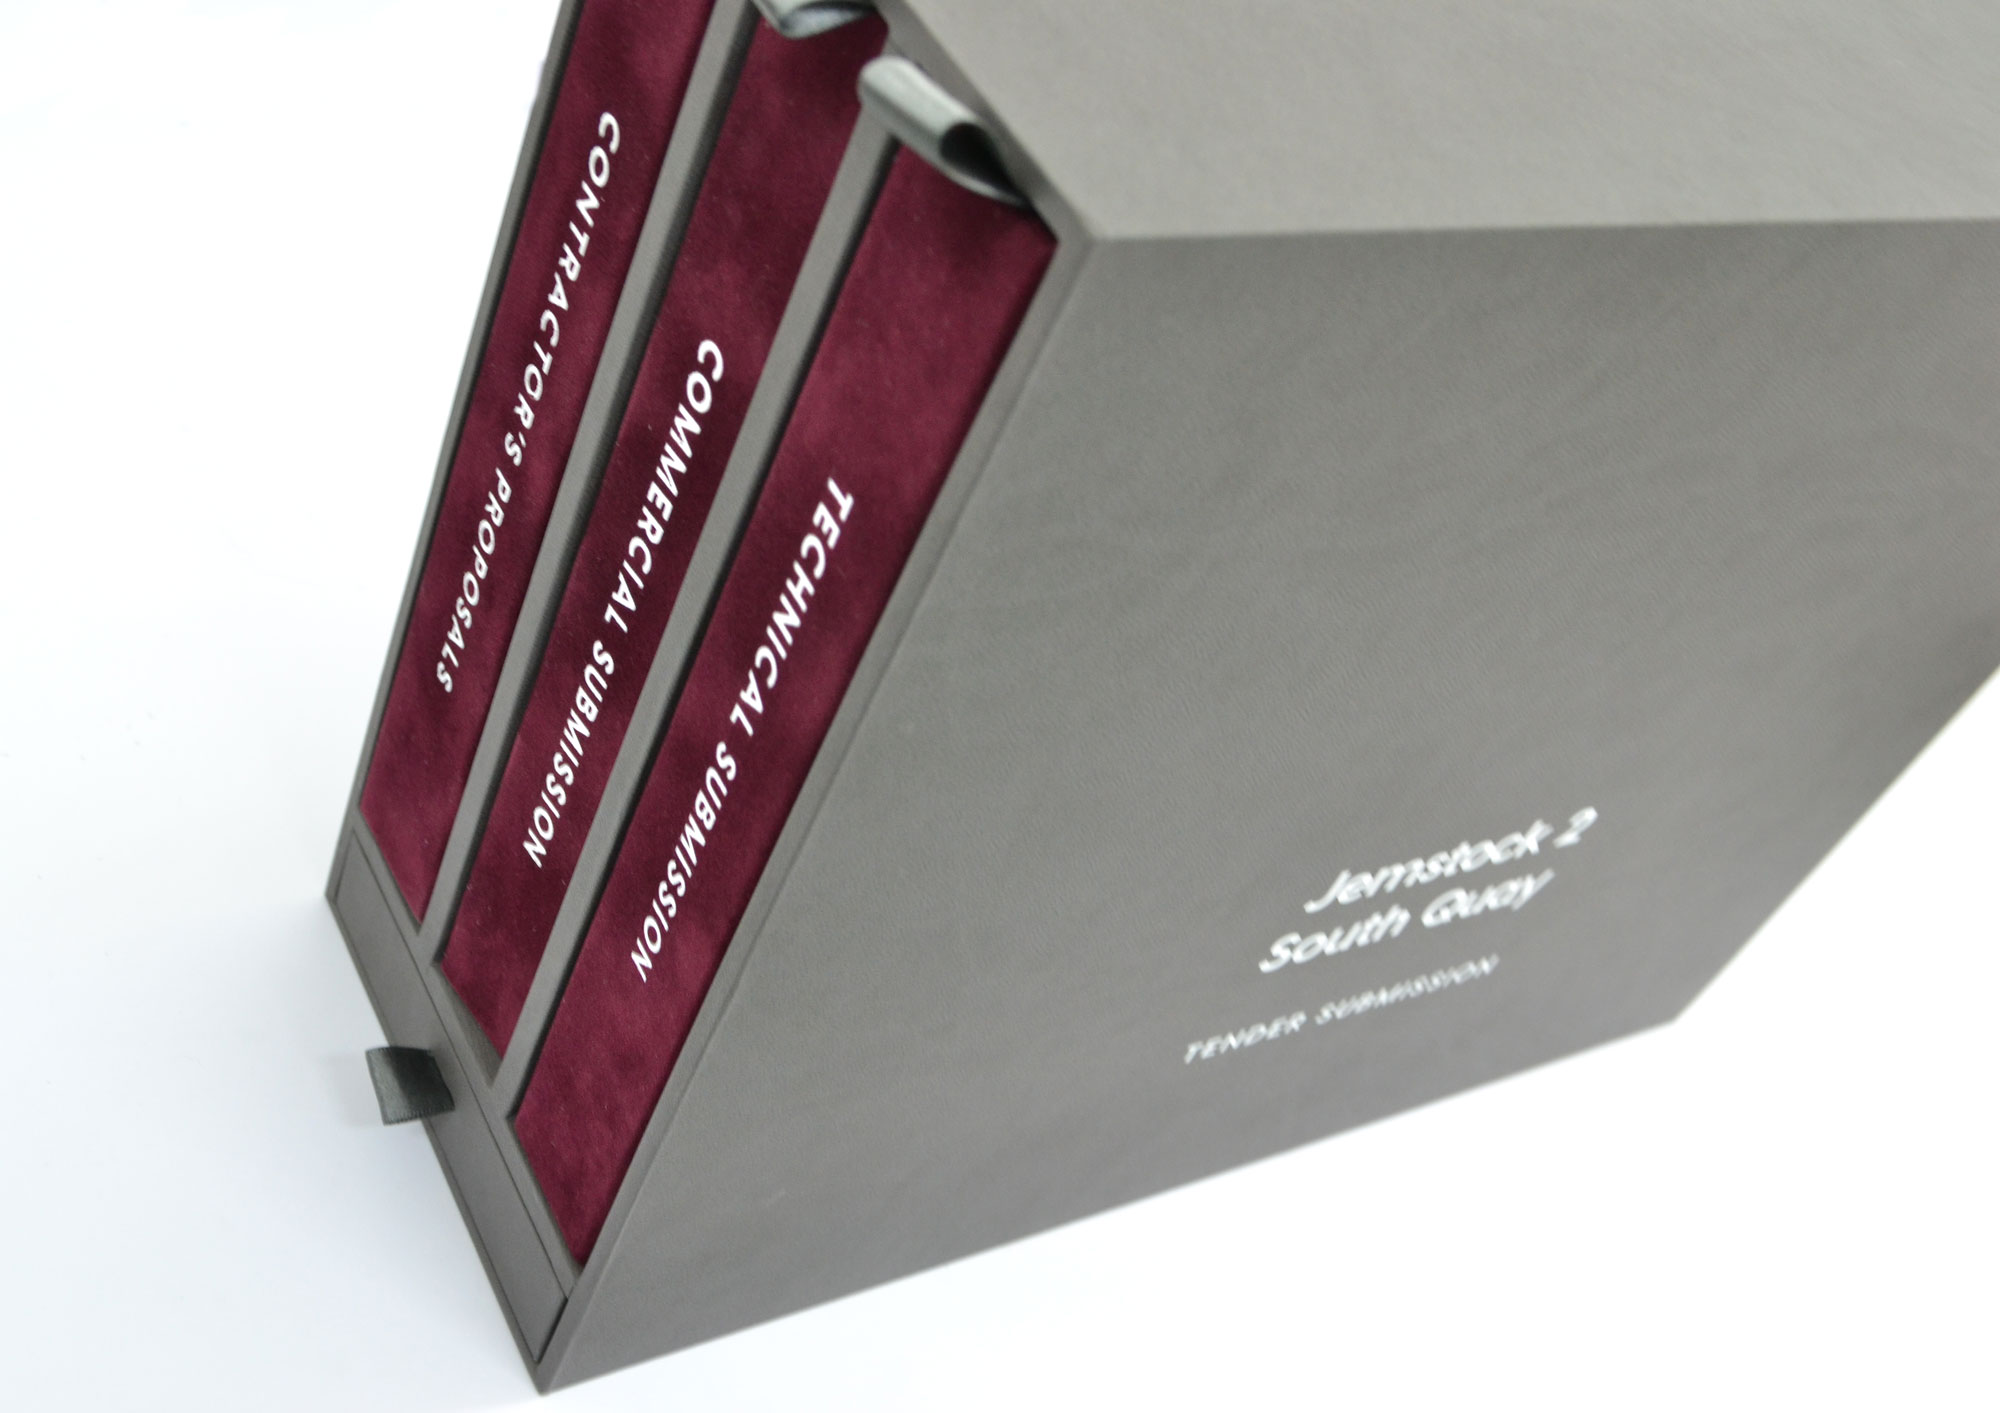 Slip Case Presentation Box with Silver Foiling